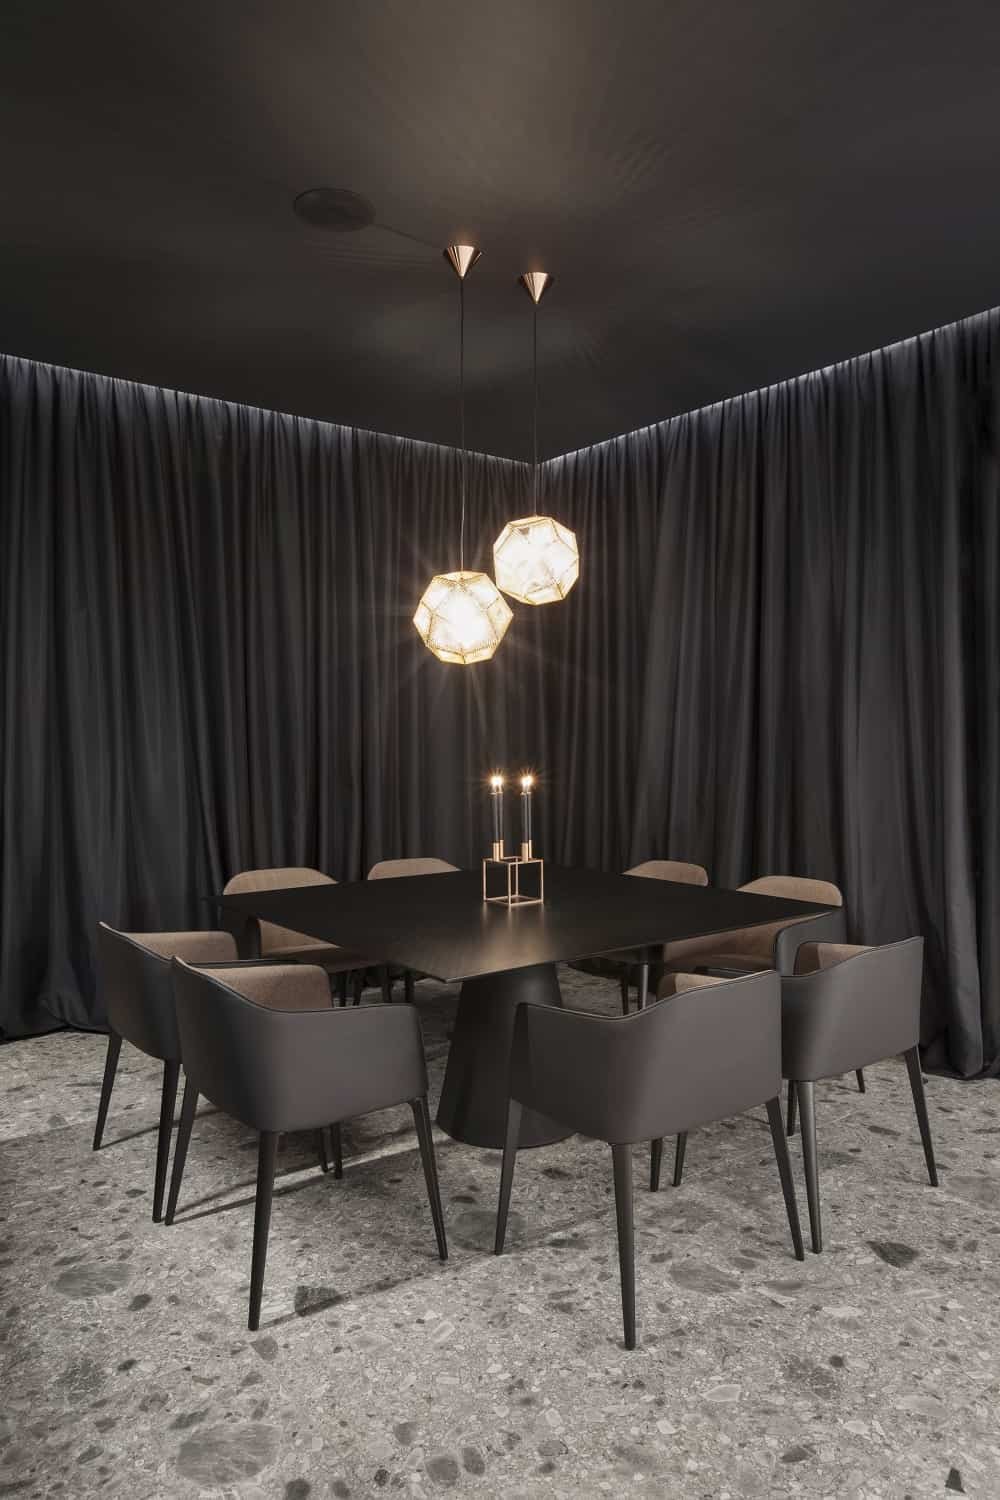 Dining area in the SPV29 designed by ALL In STUDIO LTD.